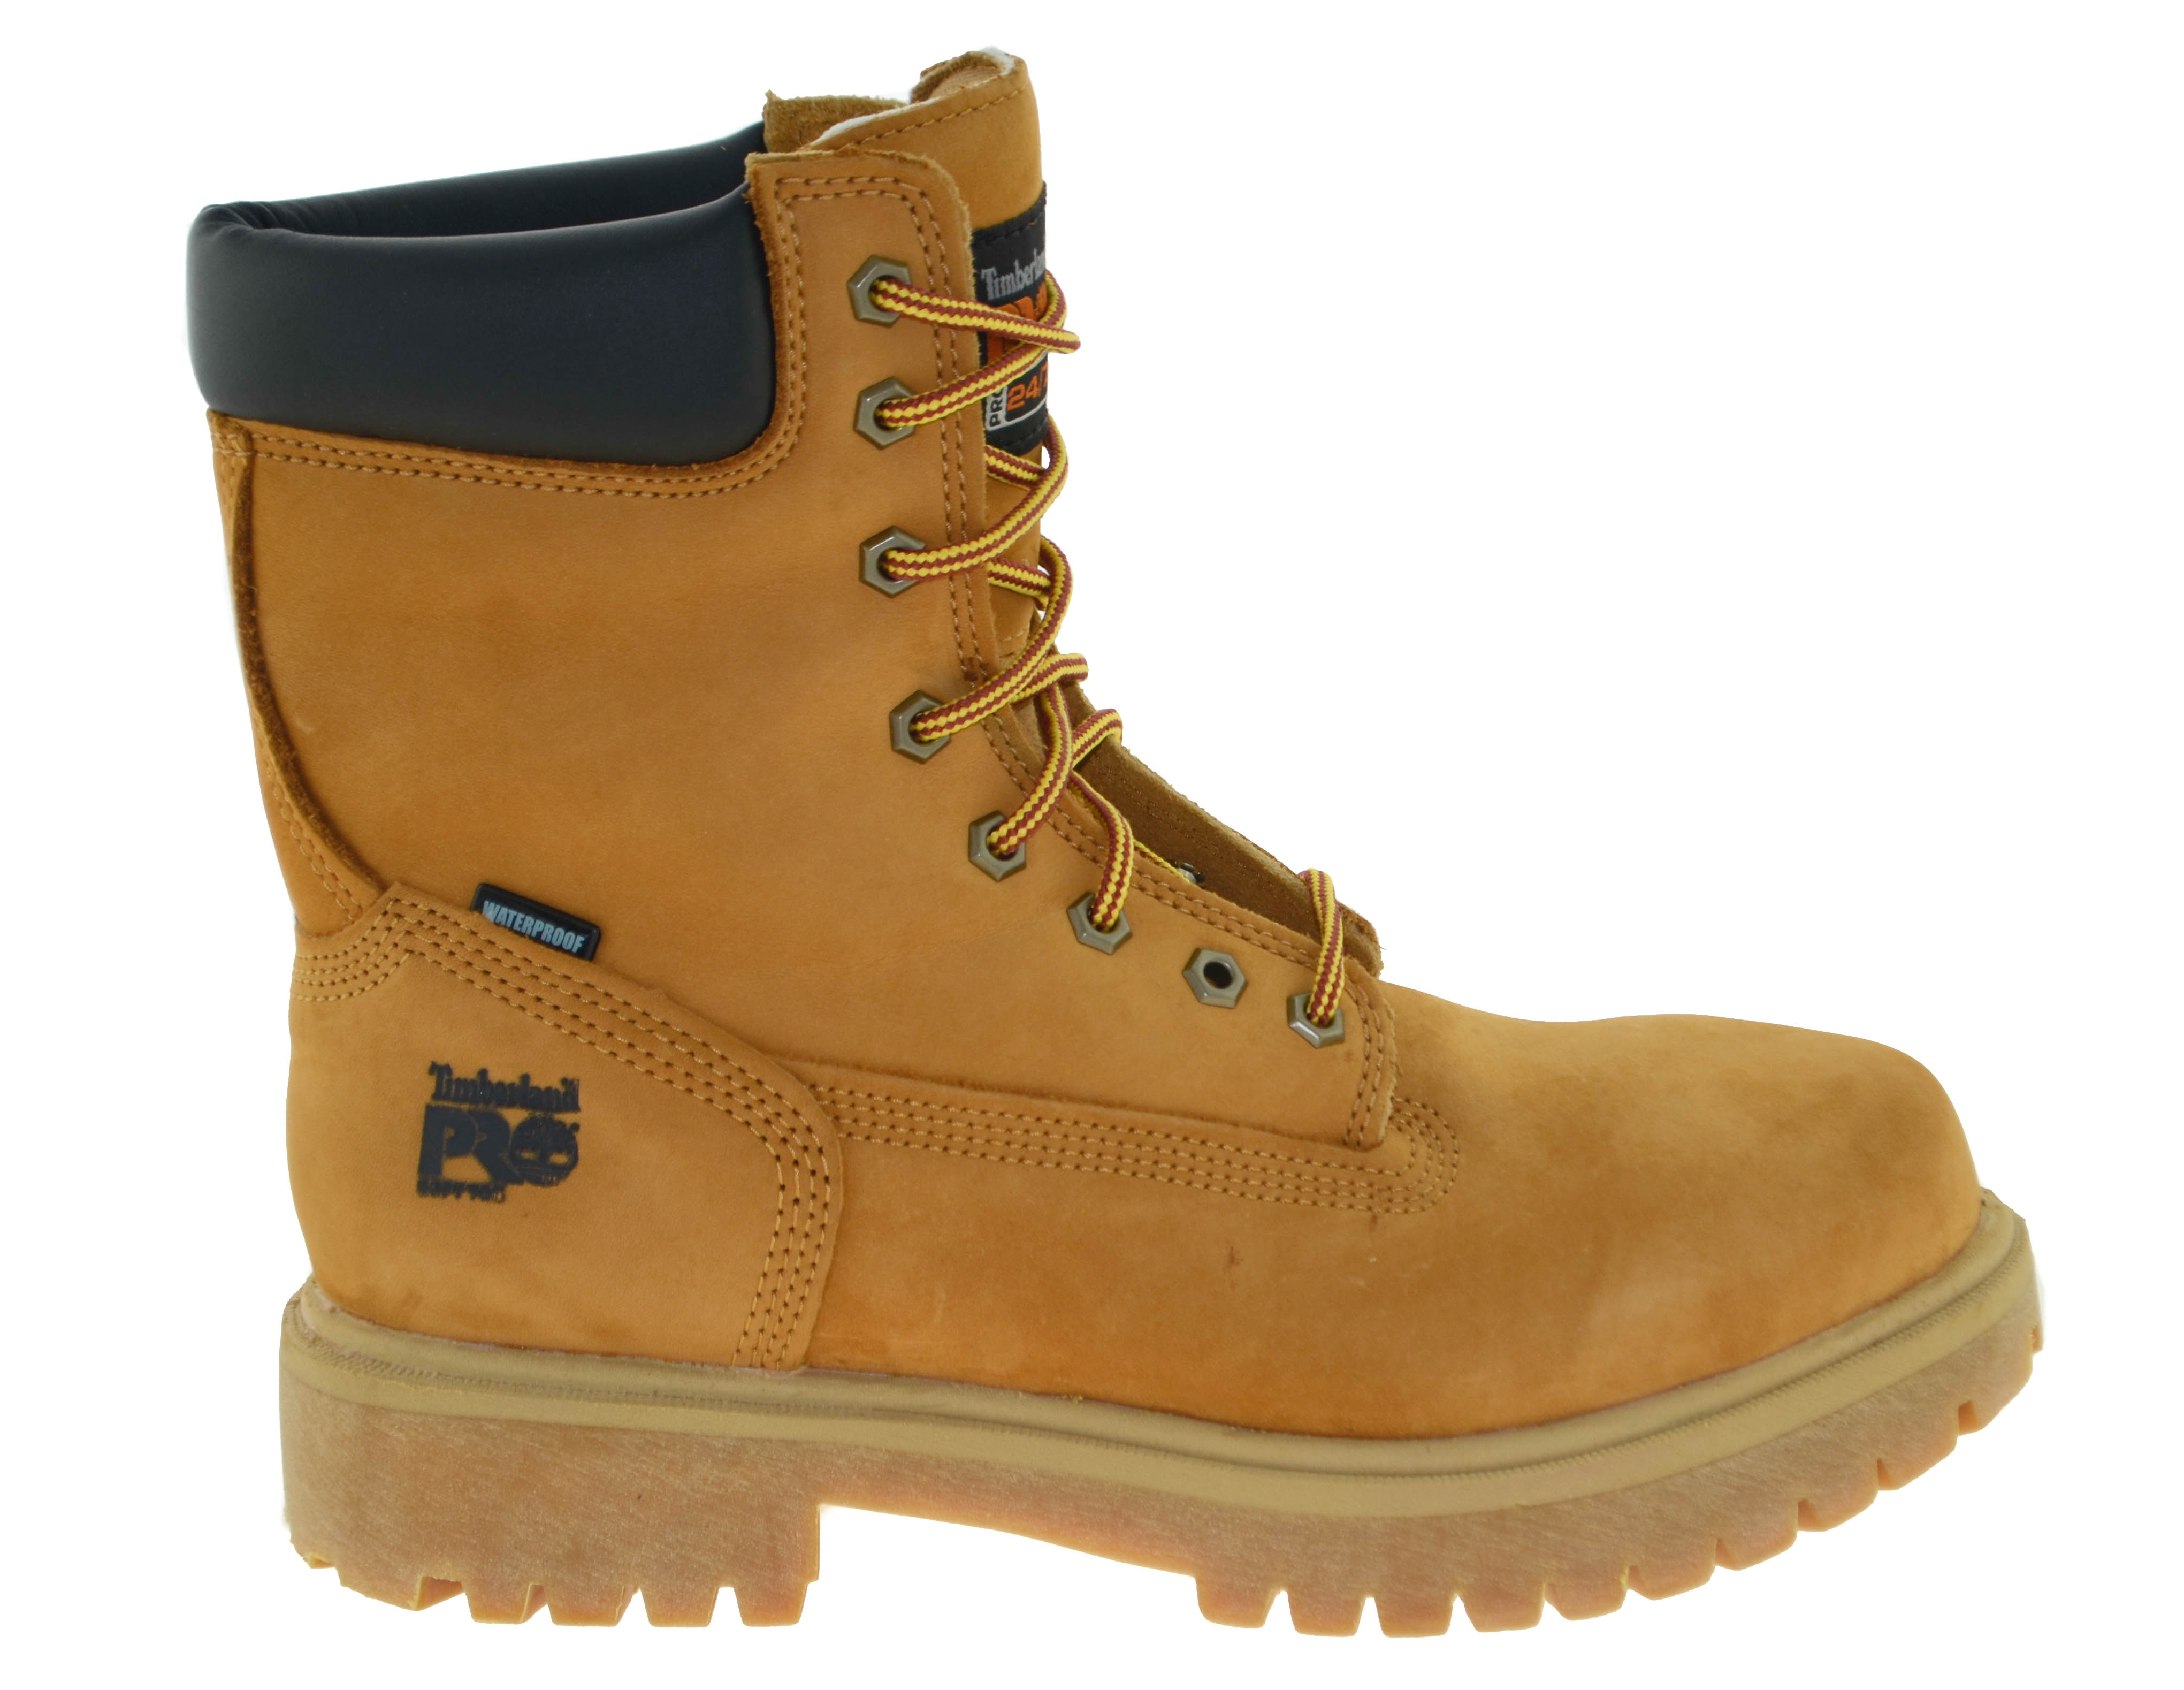 502144b756b Details about Timberland Pro Men's Direct Attach 8